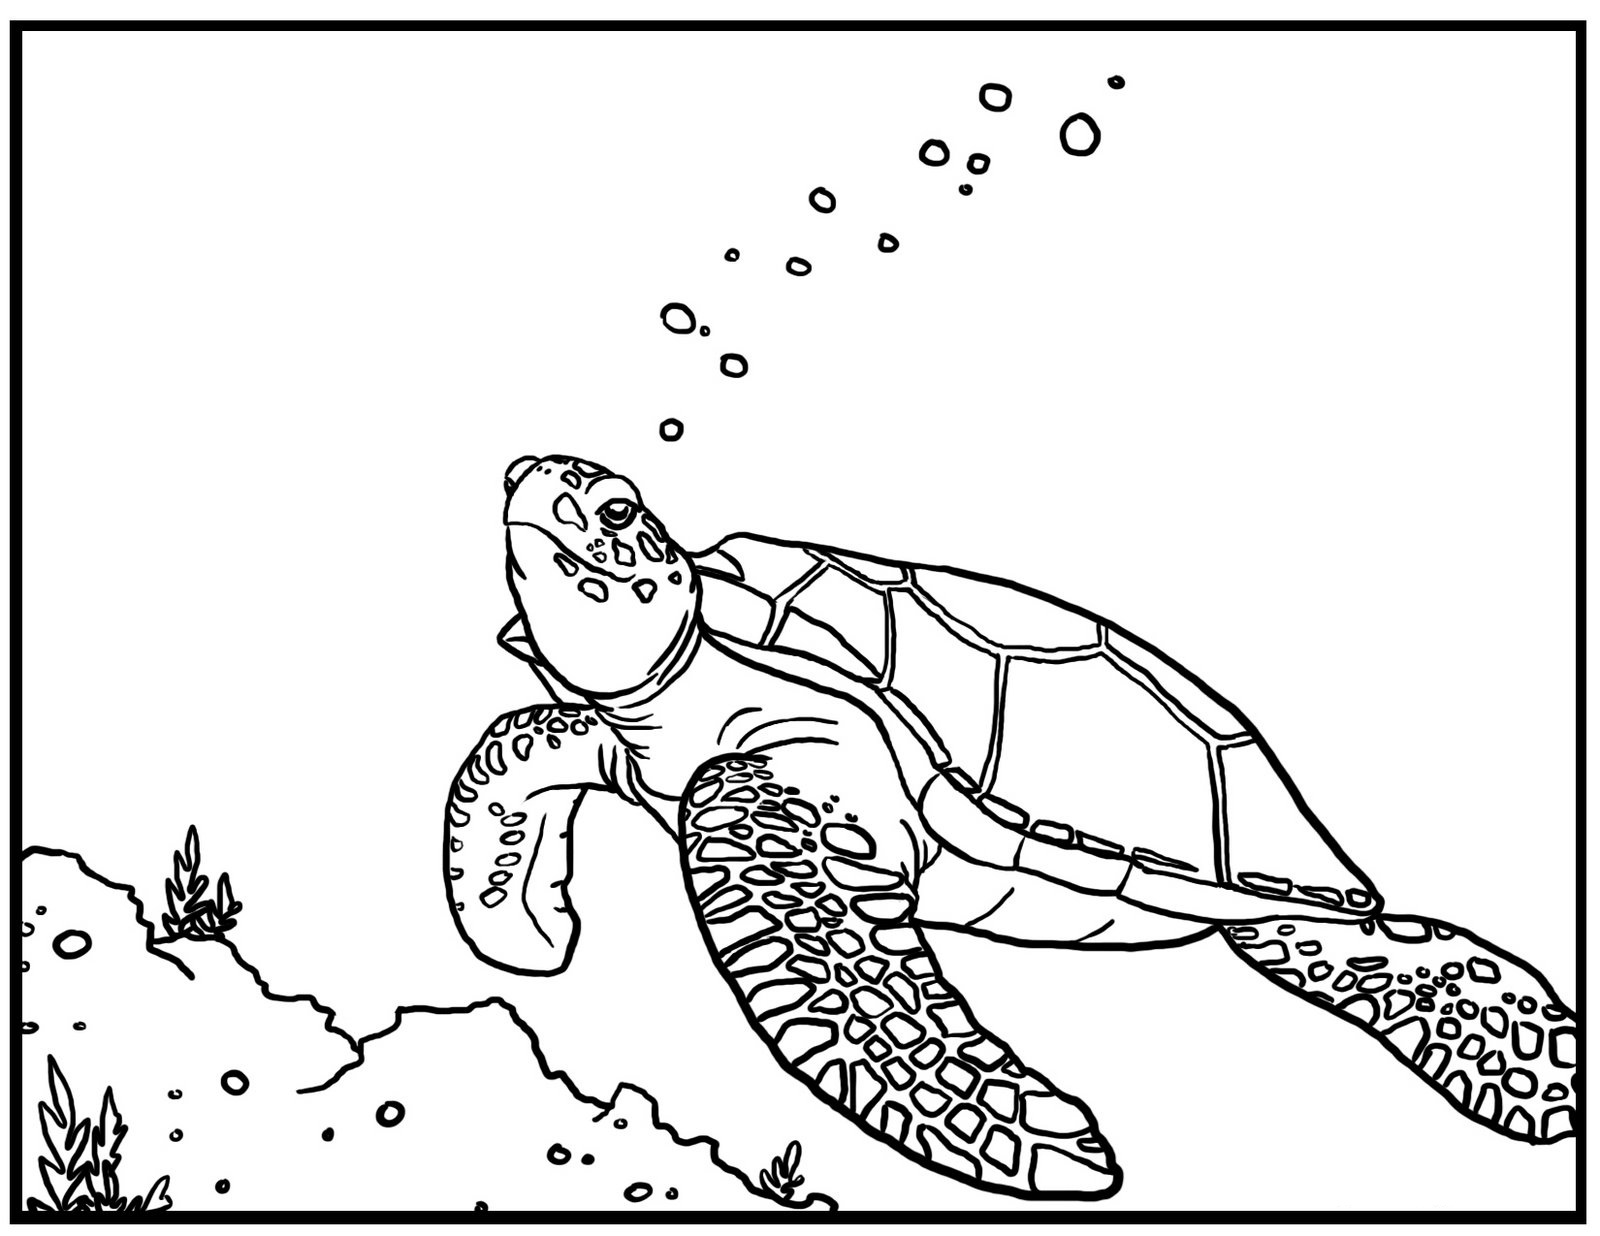 Drawn sea turtle underwate animal Sea coloring pages ColoringStar underwater